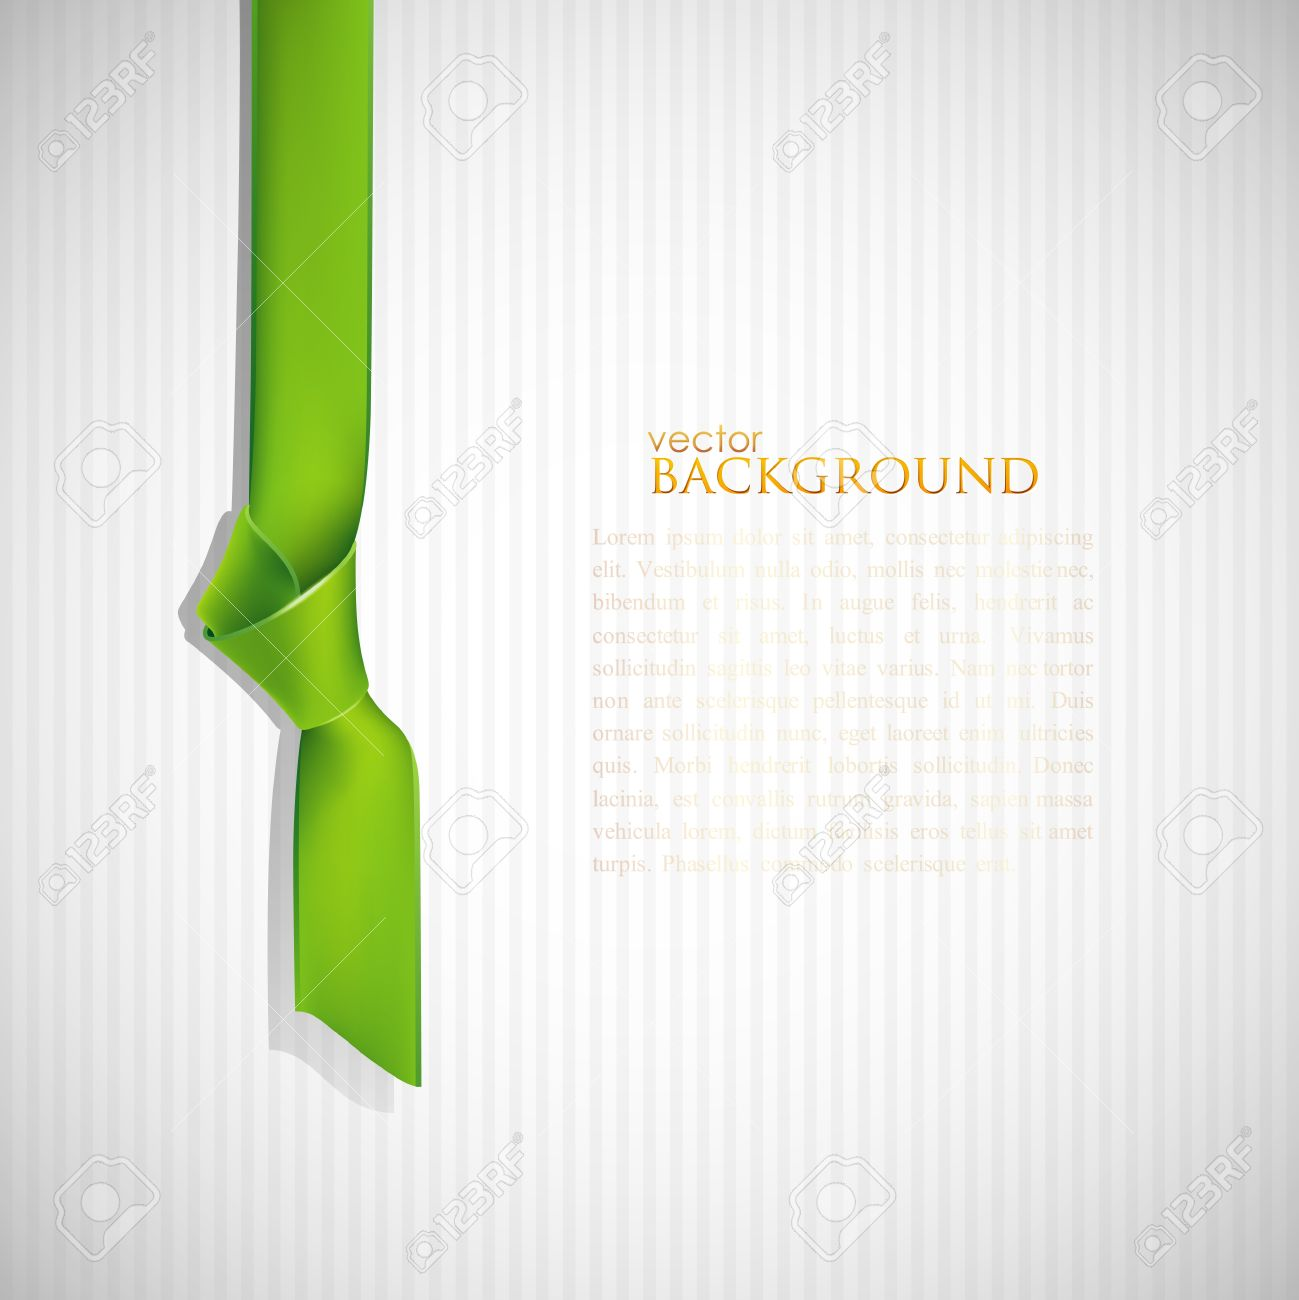 abstract background with green bookmark royalty free cliparts